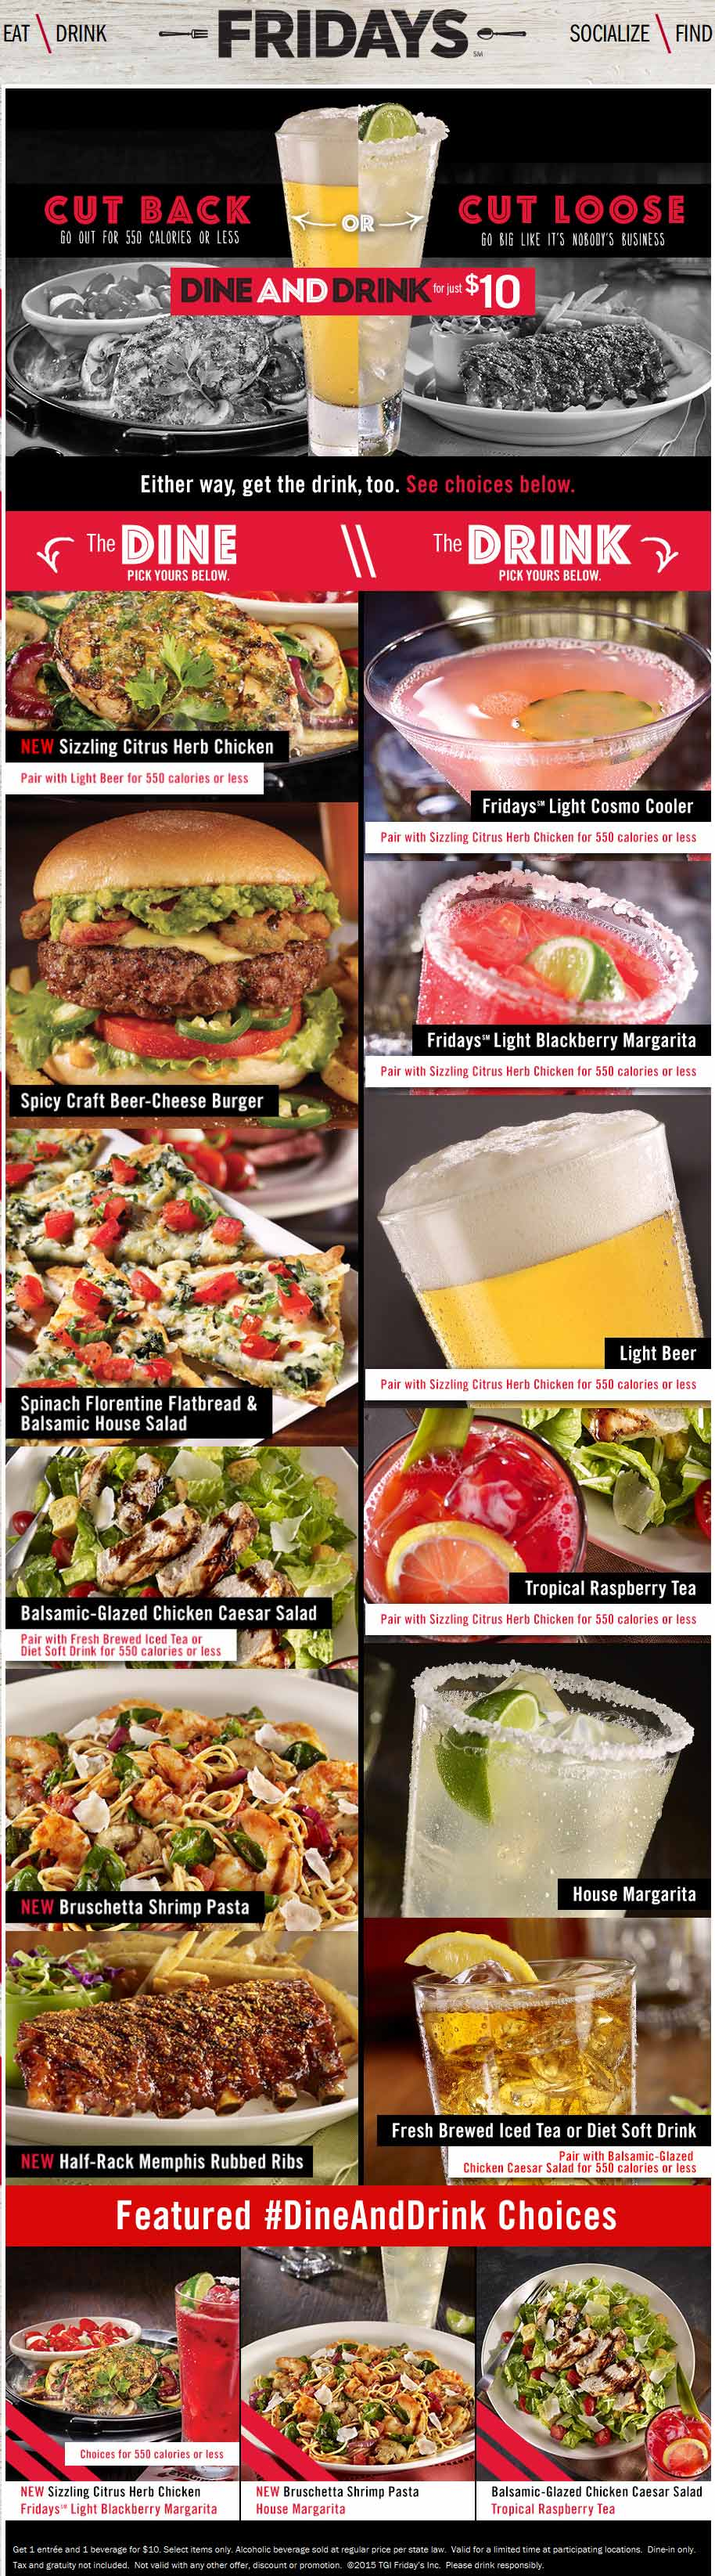 TGI Fridays Coupon December 2016 Entree & some booze for $10 at TGI Fridays